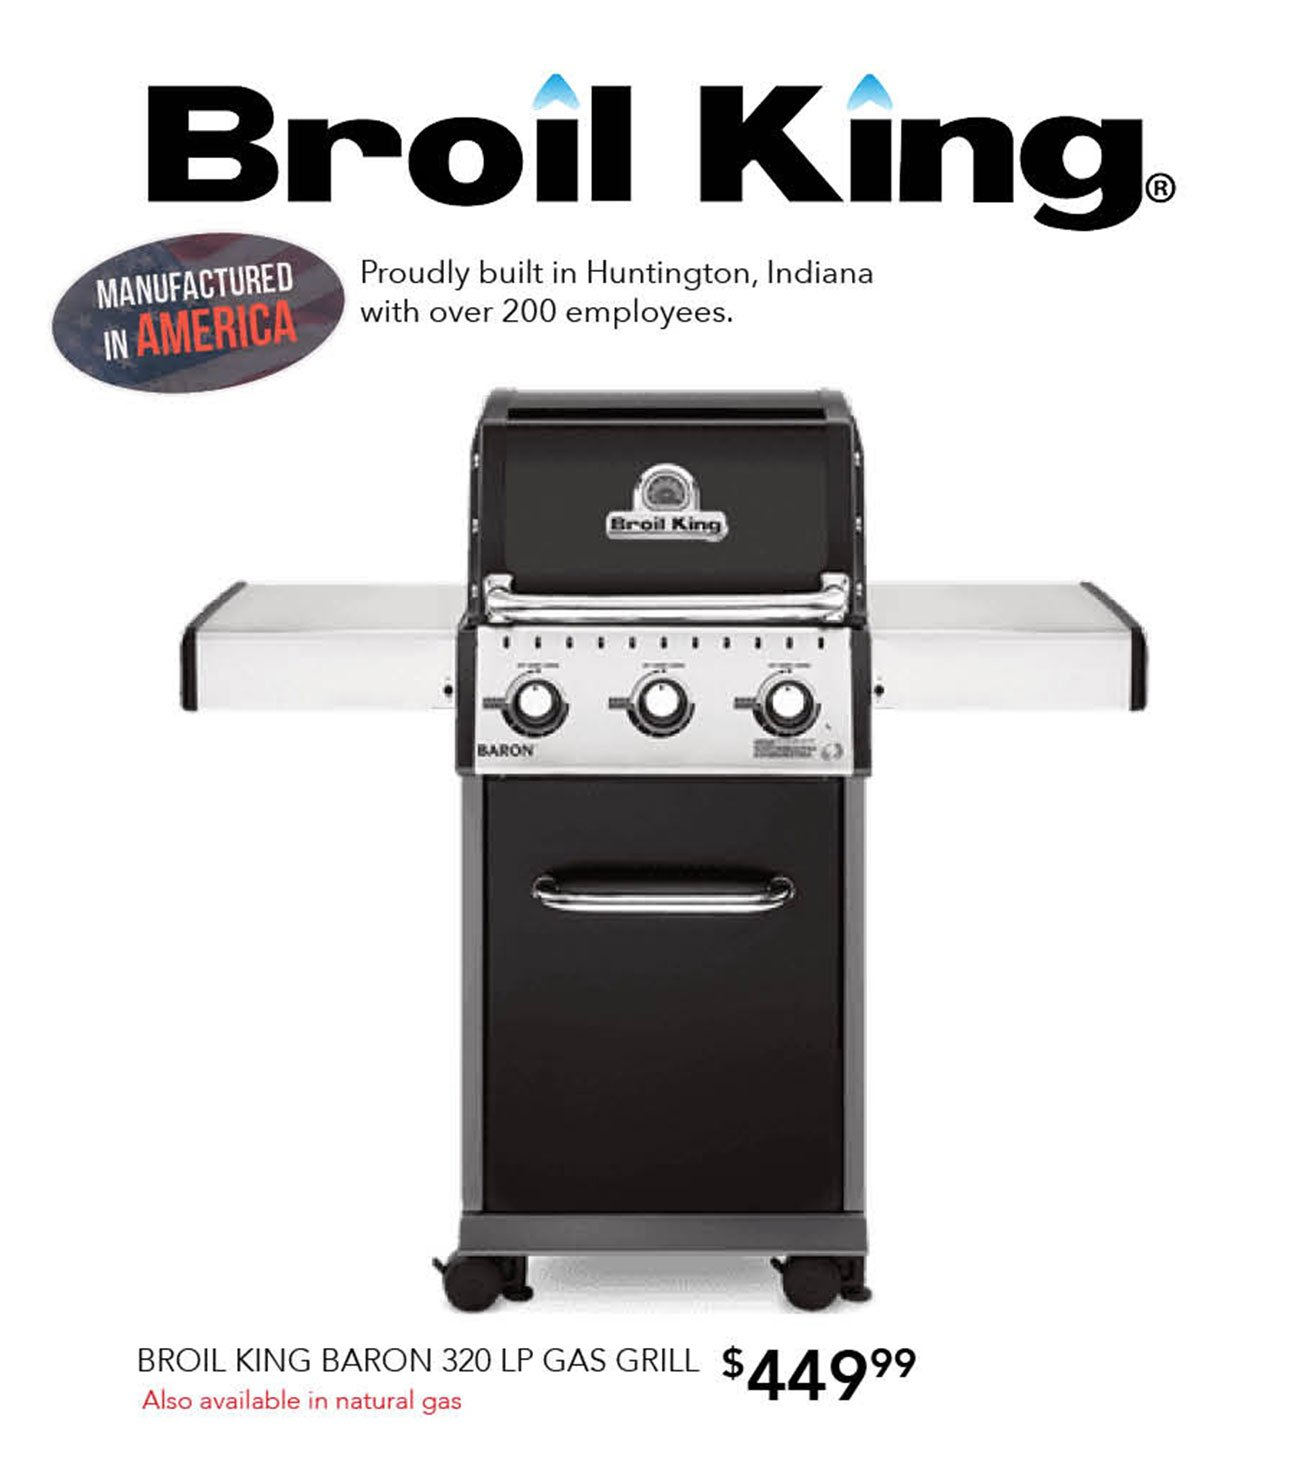 Broil-king-gas-grill